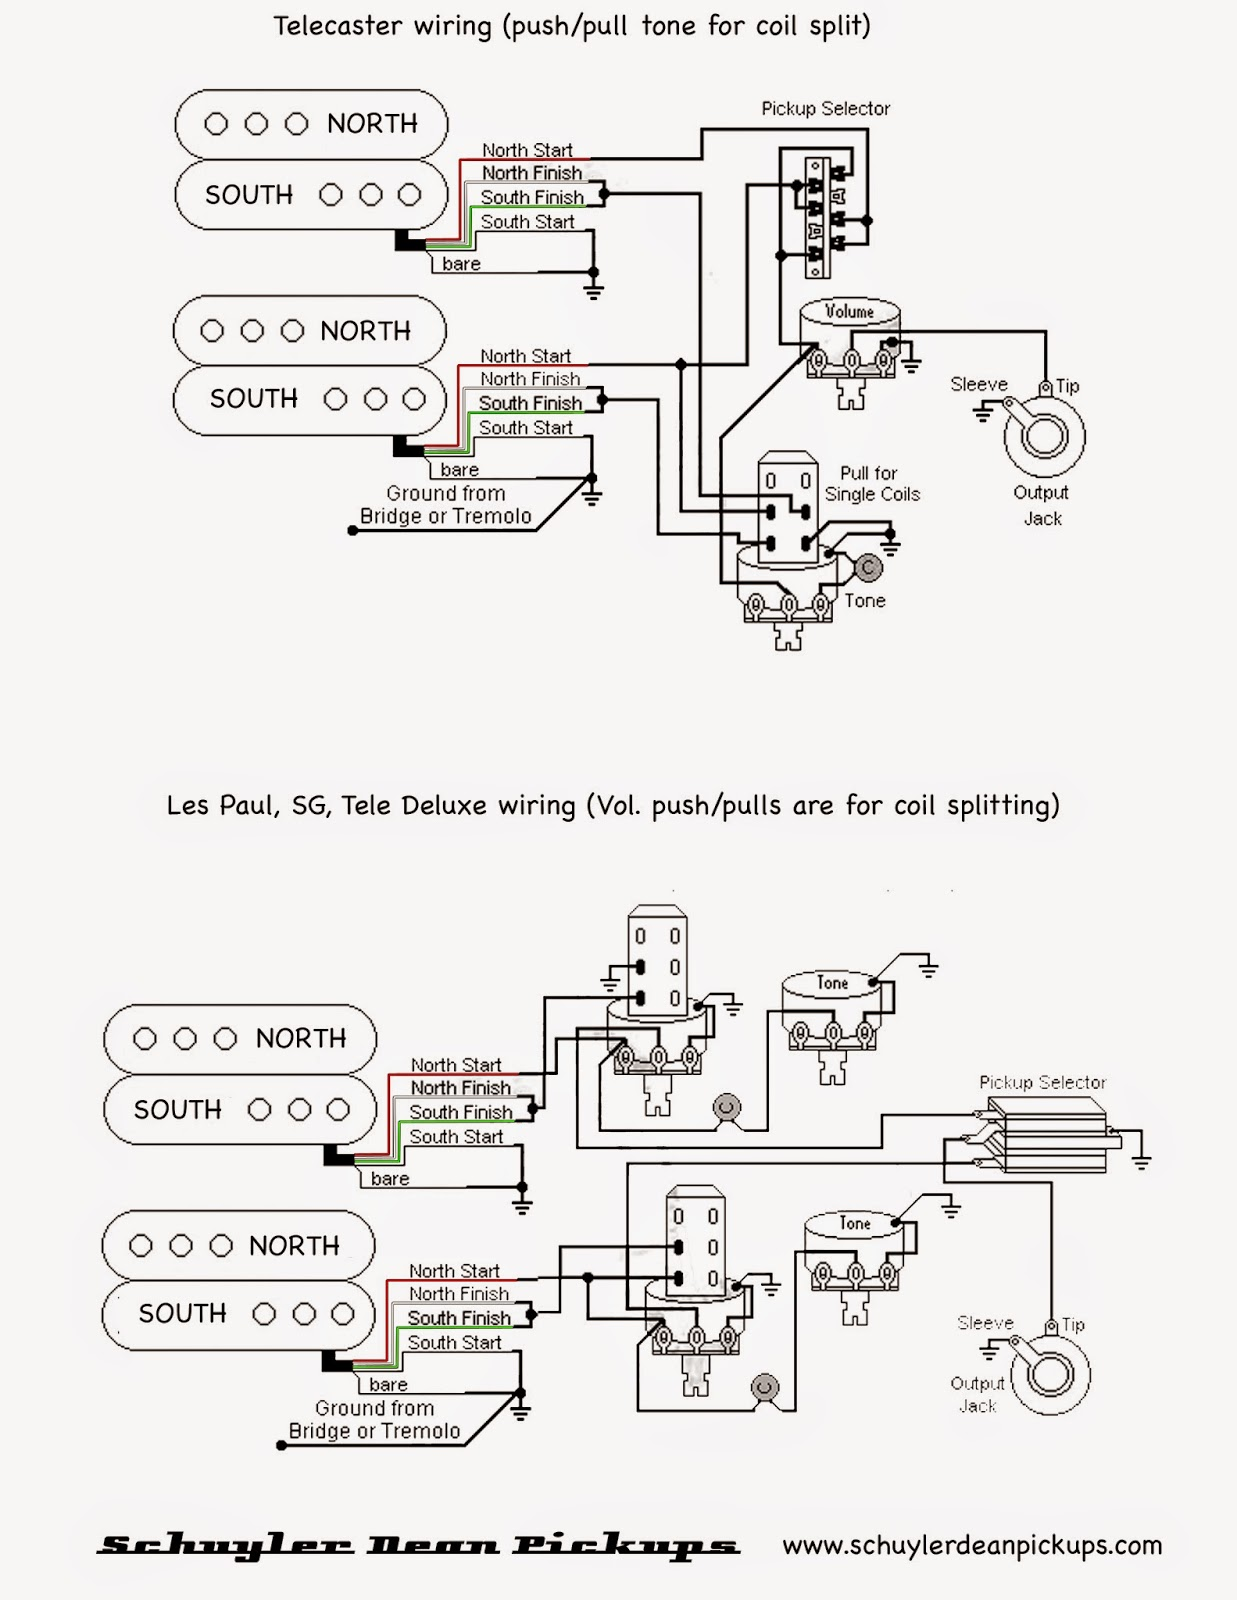 Les Paul Standard Wiring Diagram - Collection